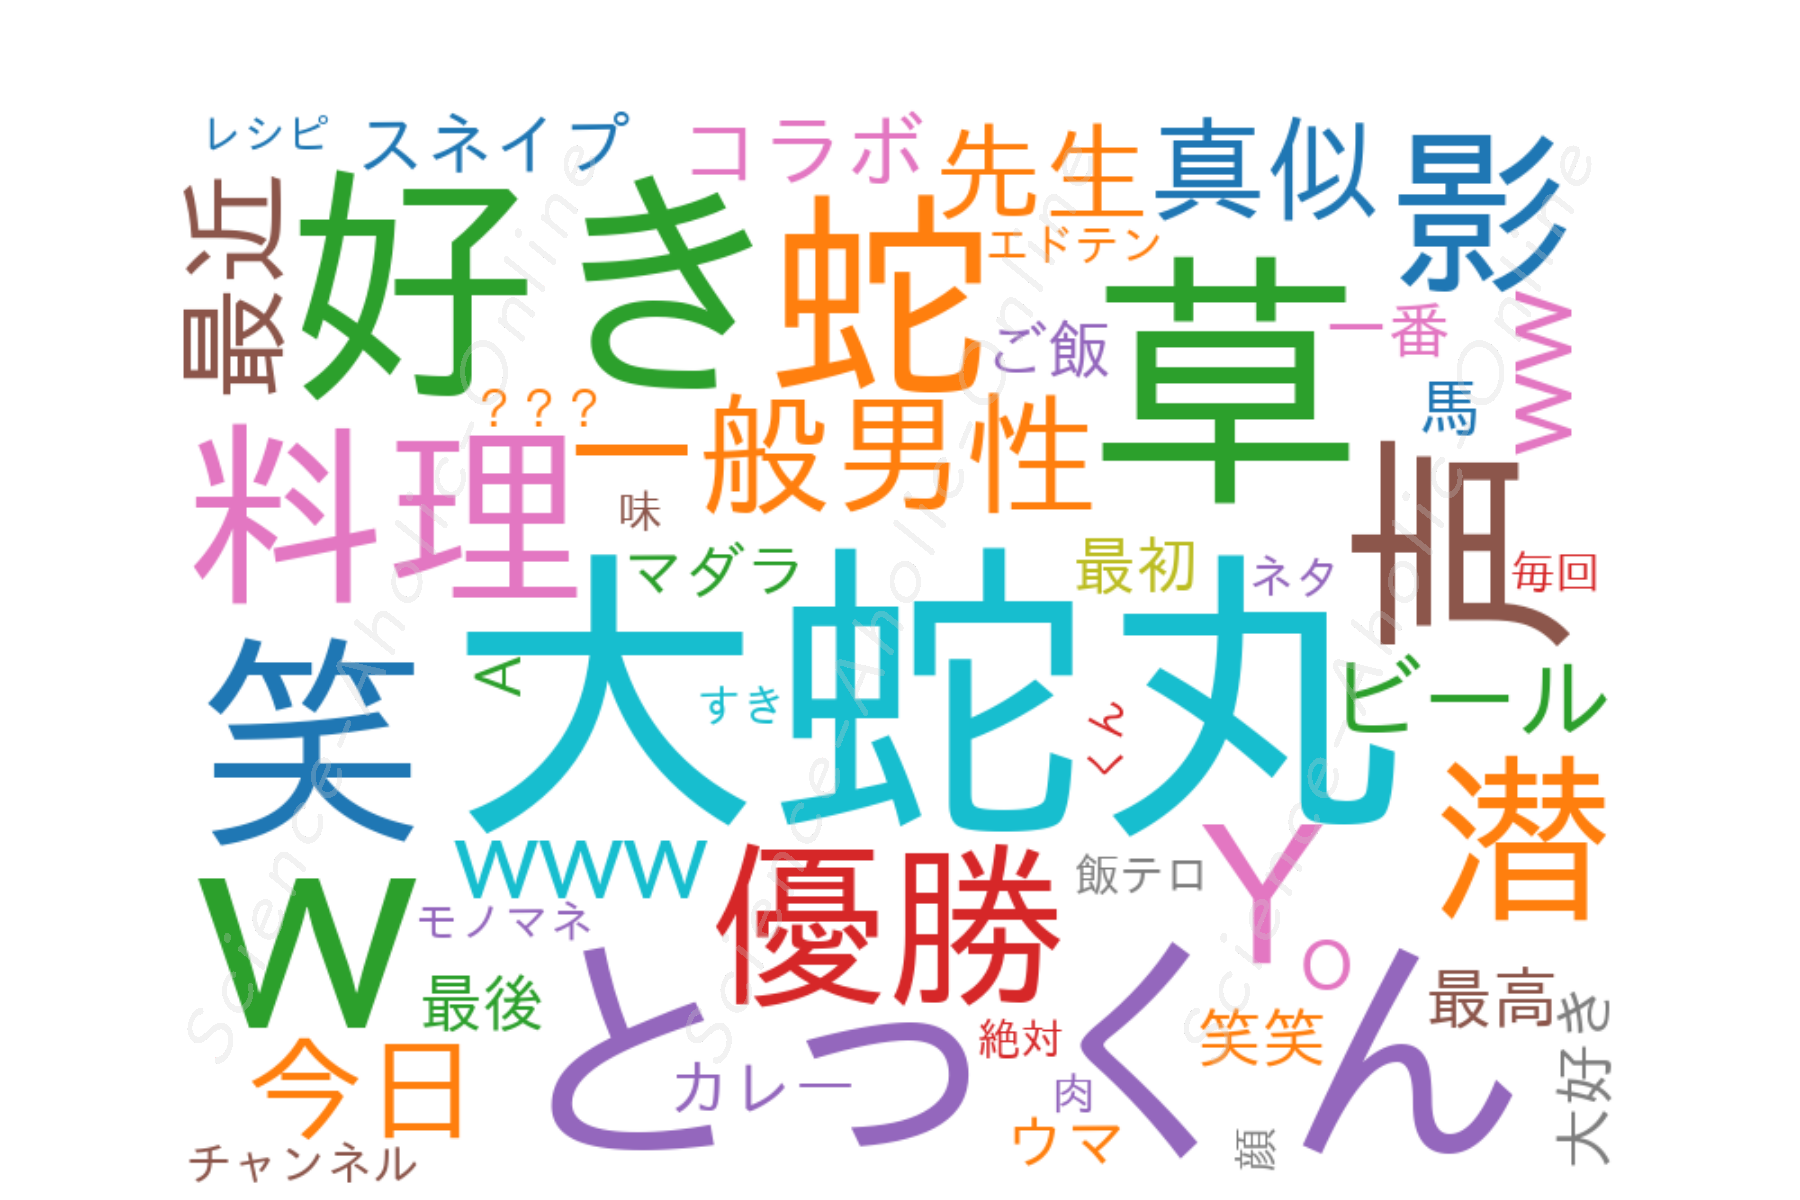 https://science-aholic-online.com/wp-content/uploads/2020/08/wordcloud_とっくんのYouTubeチャンネル.png